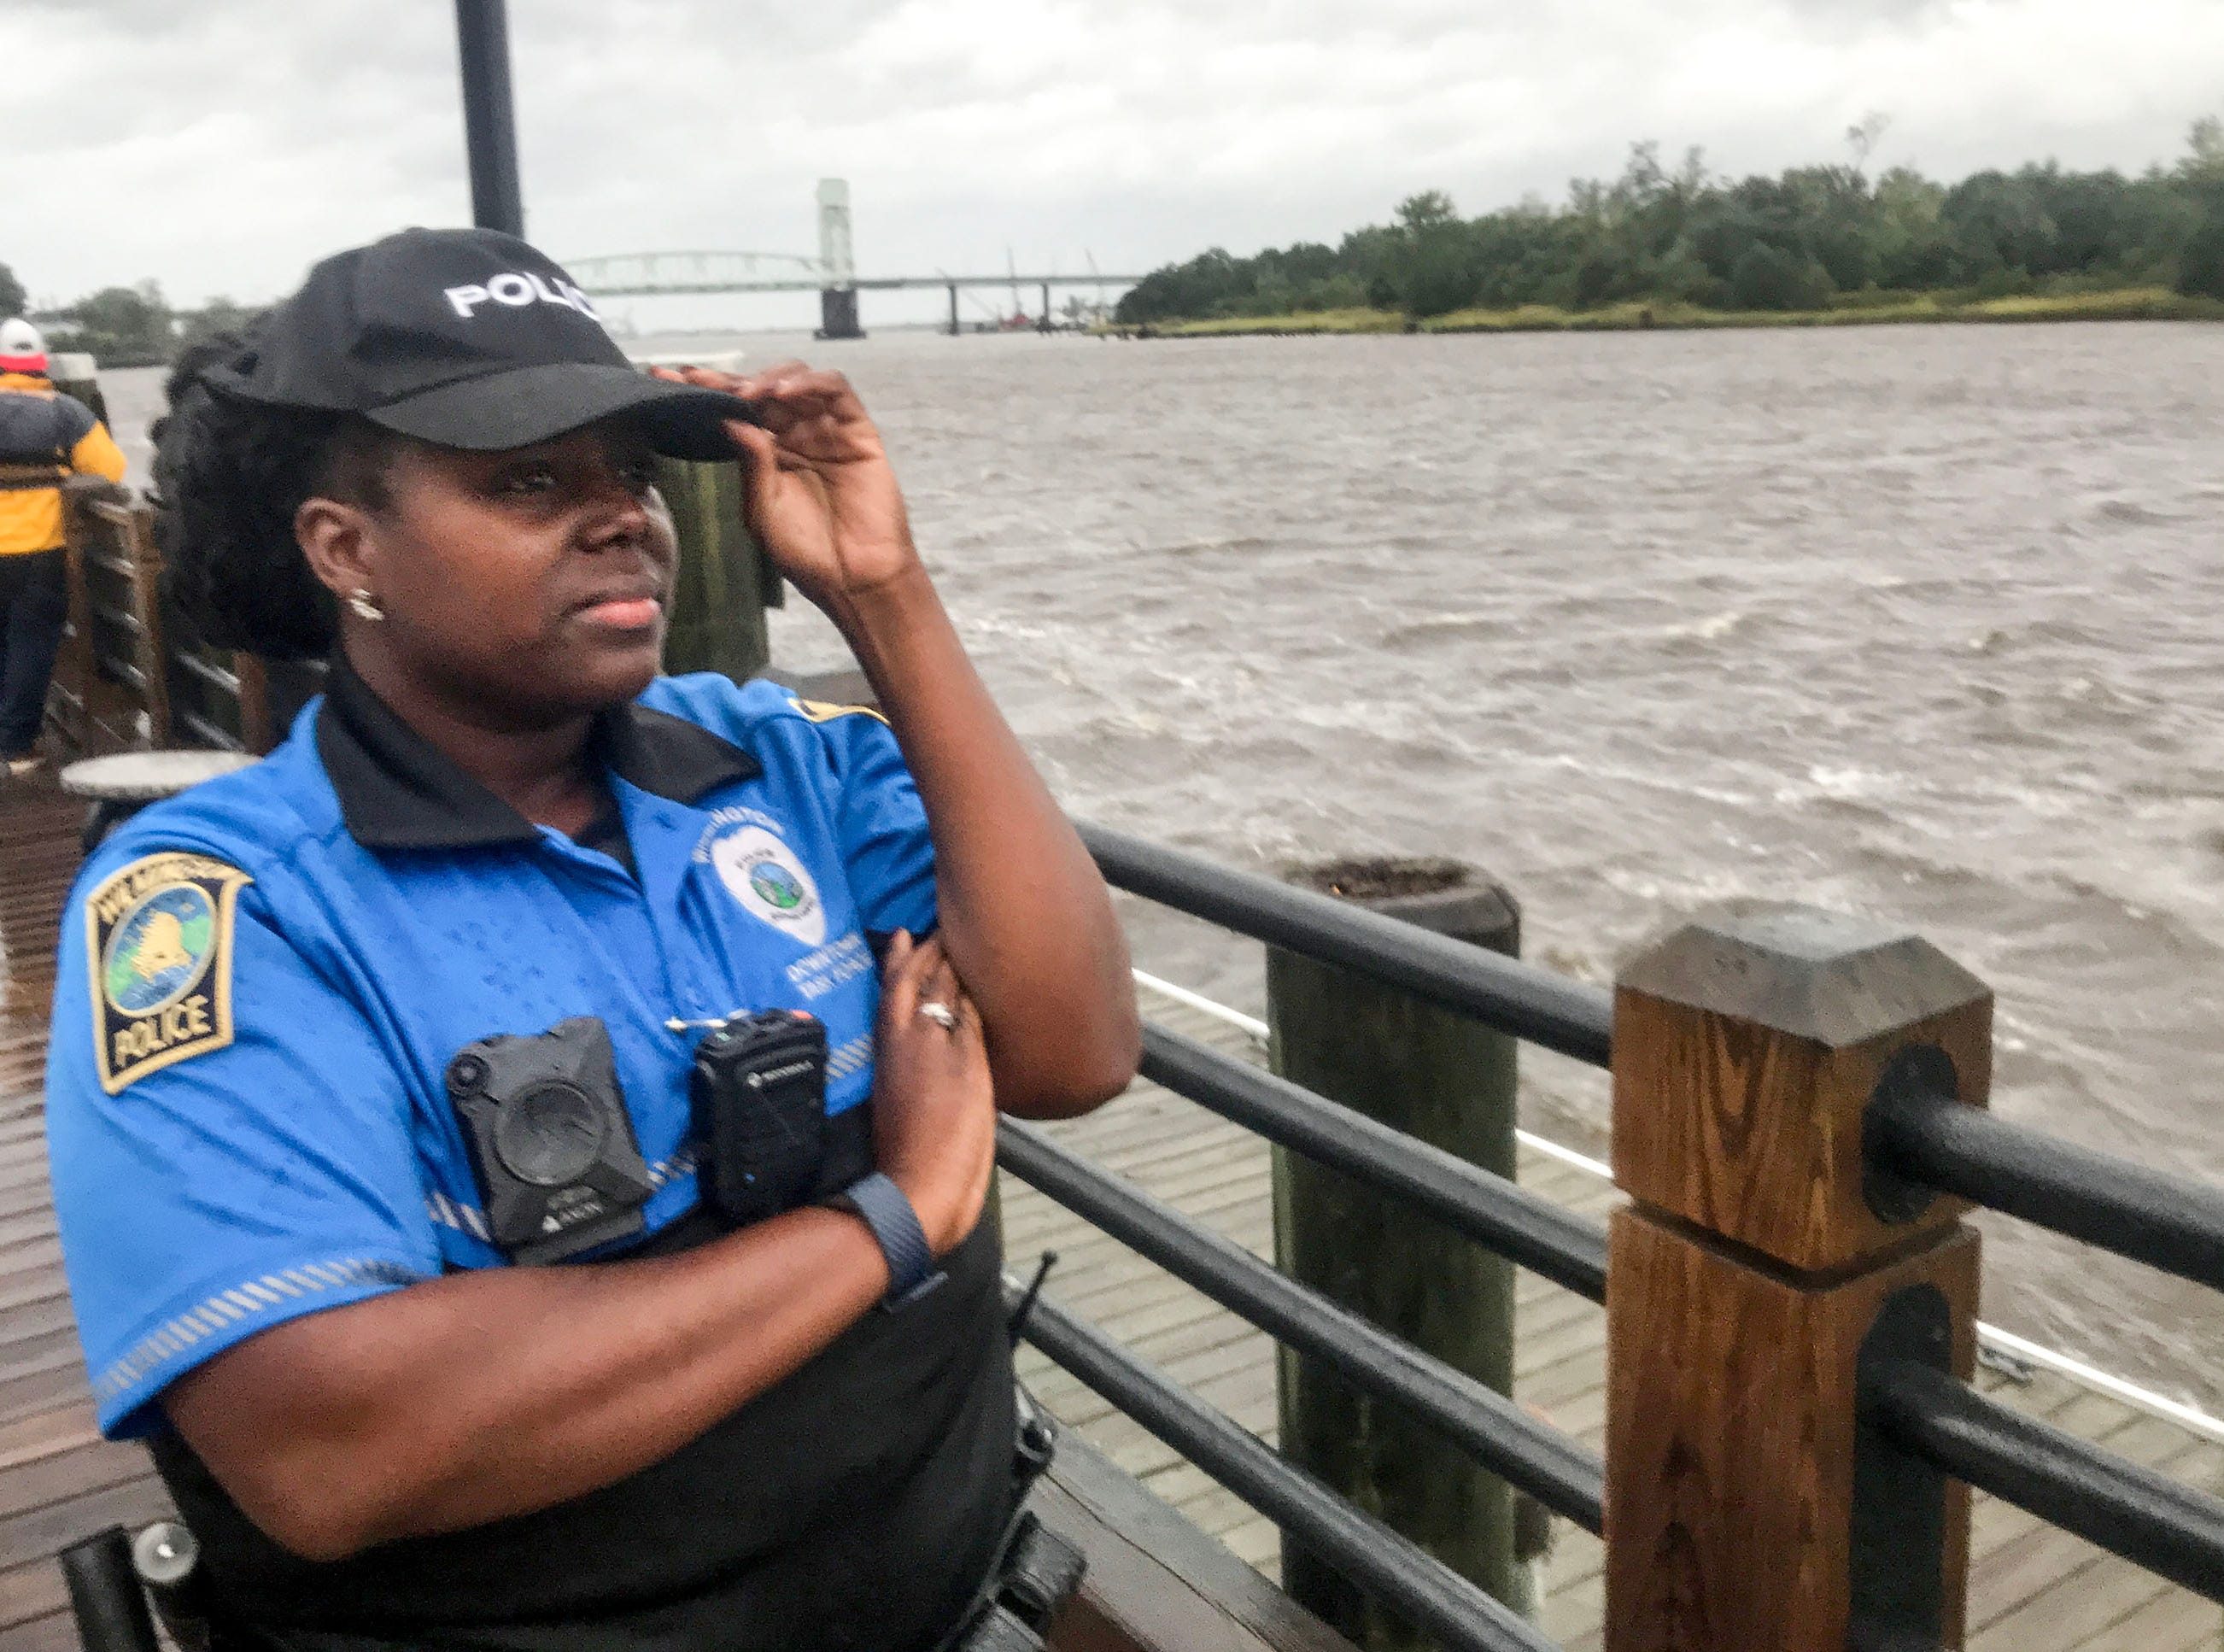 Aricka Sidbury, a Wilmington police officer, patrols downtown near the Cape Fear River in Wilmington, North Carolina on Thursday, September 13, 2018. (Ken Ruinard / Greenville News / Gannett USA Today Network / 2018 )